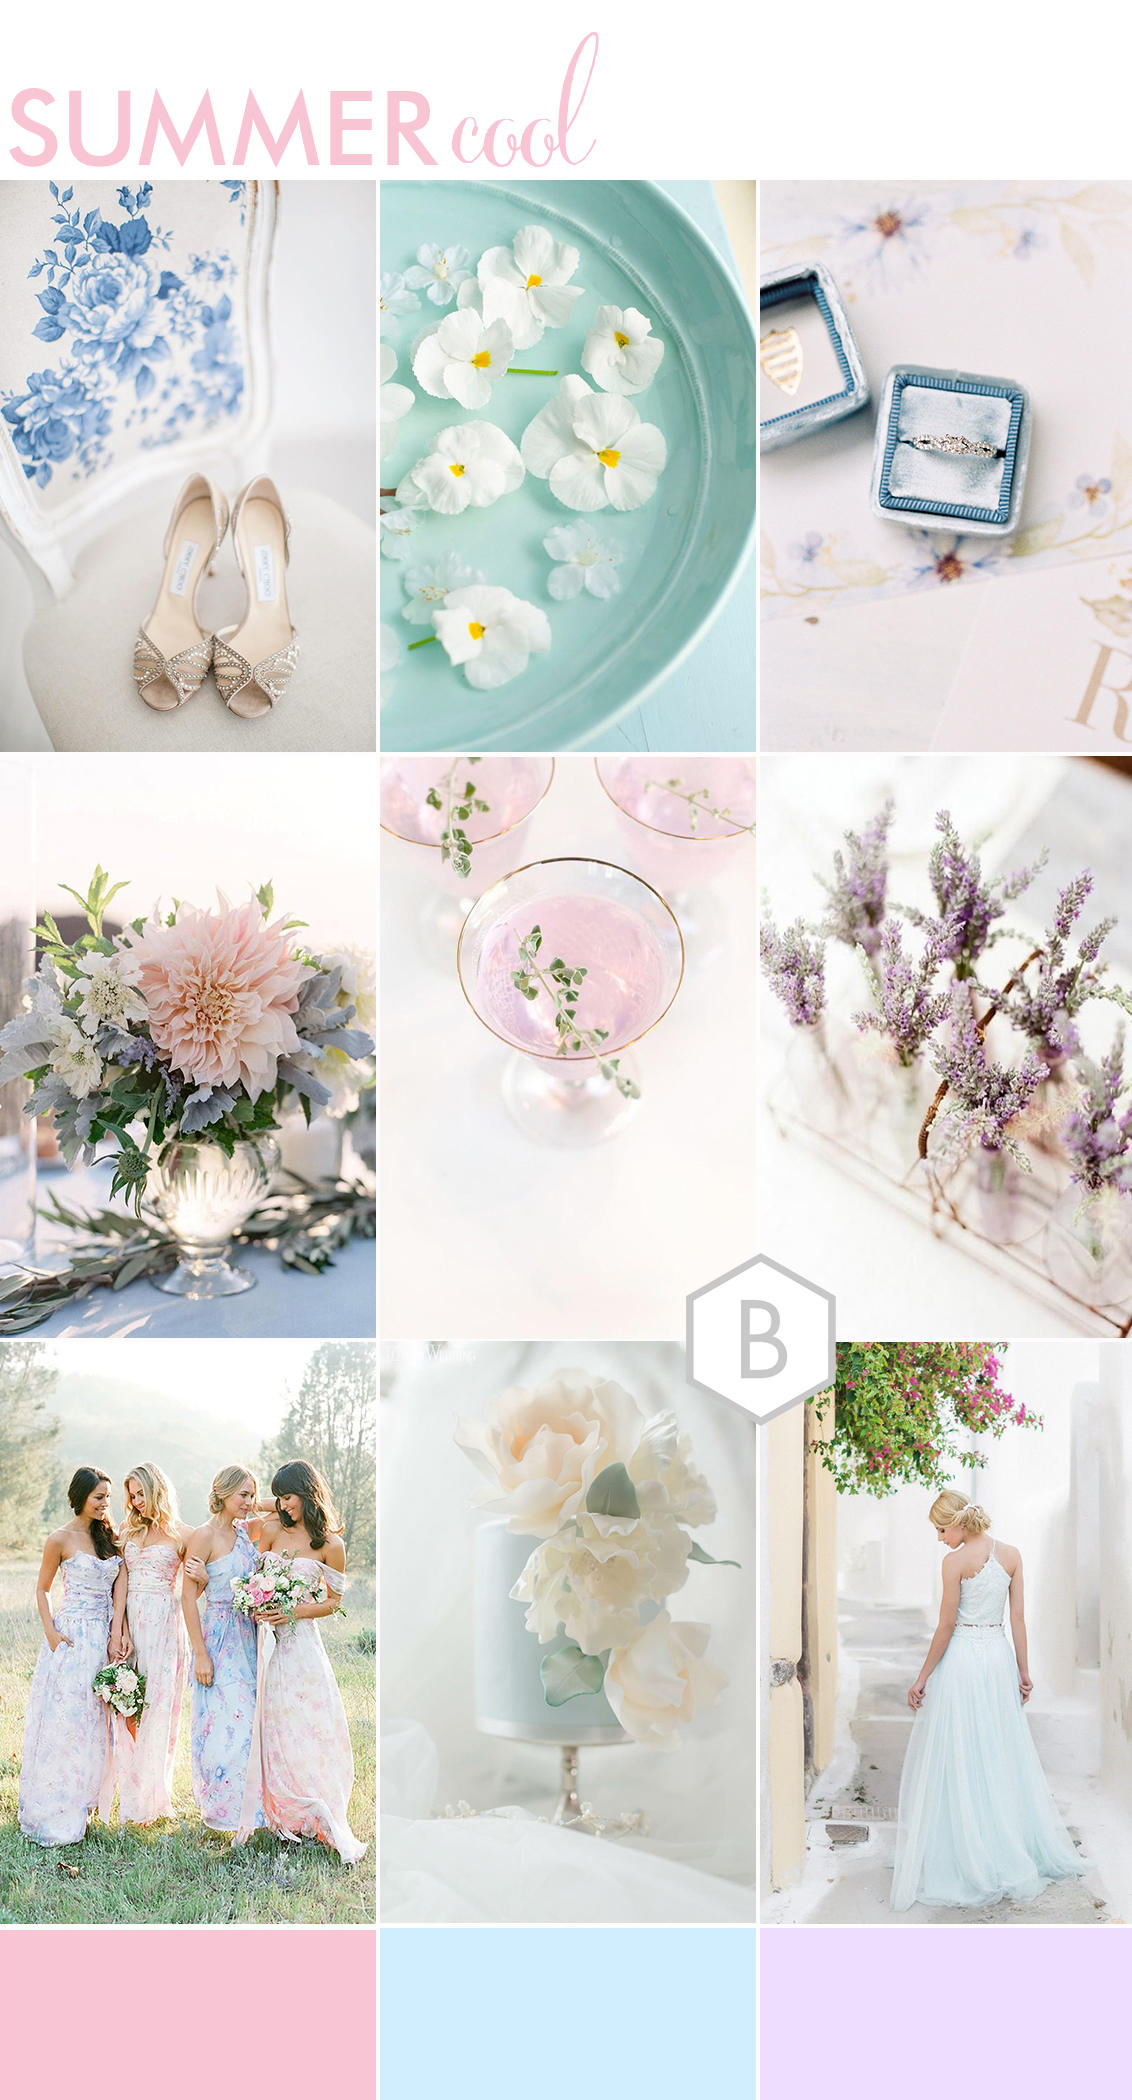 wedding moodboard of images with summer theme